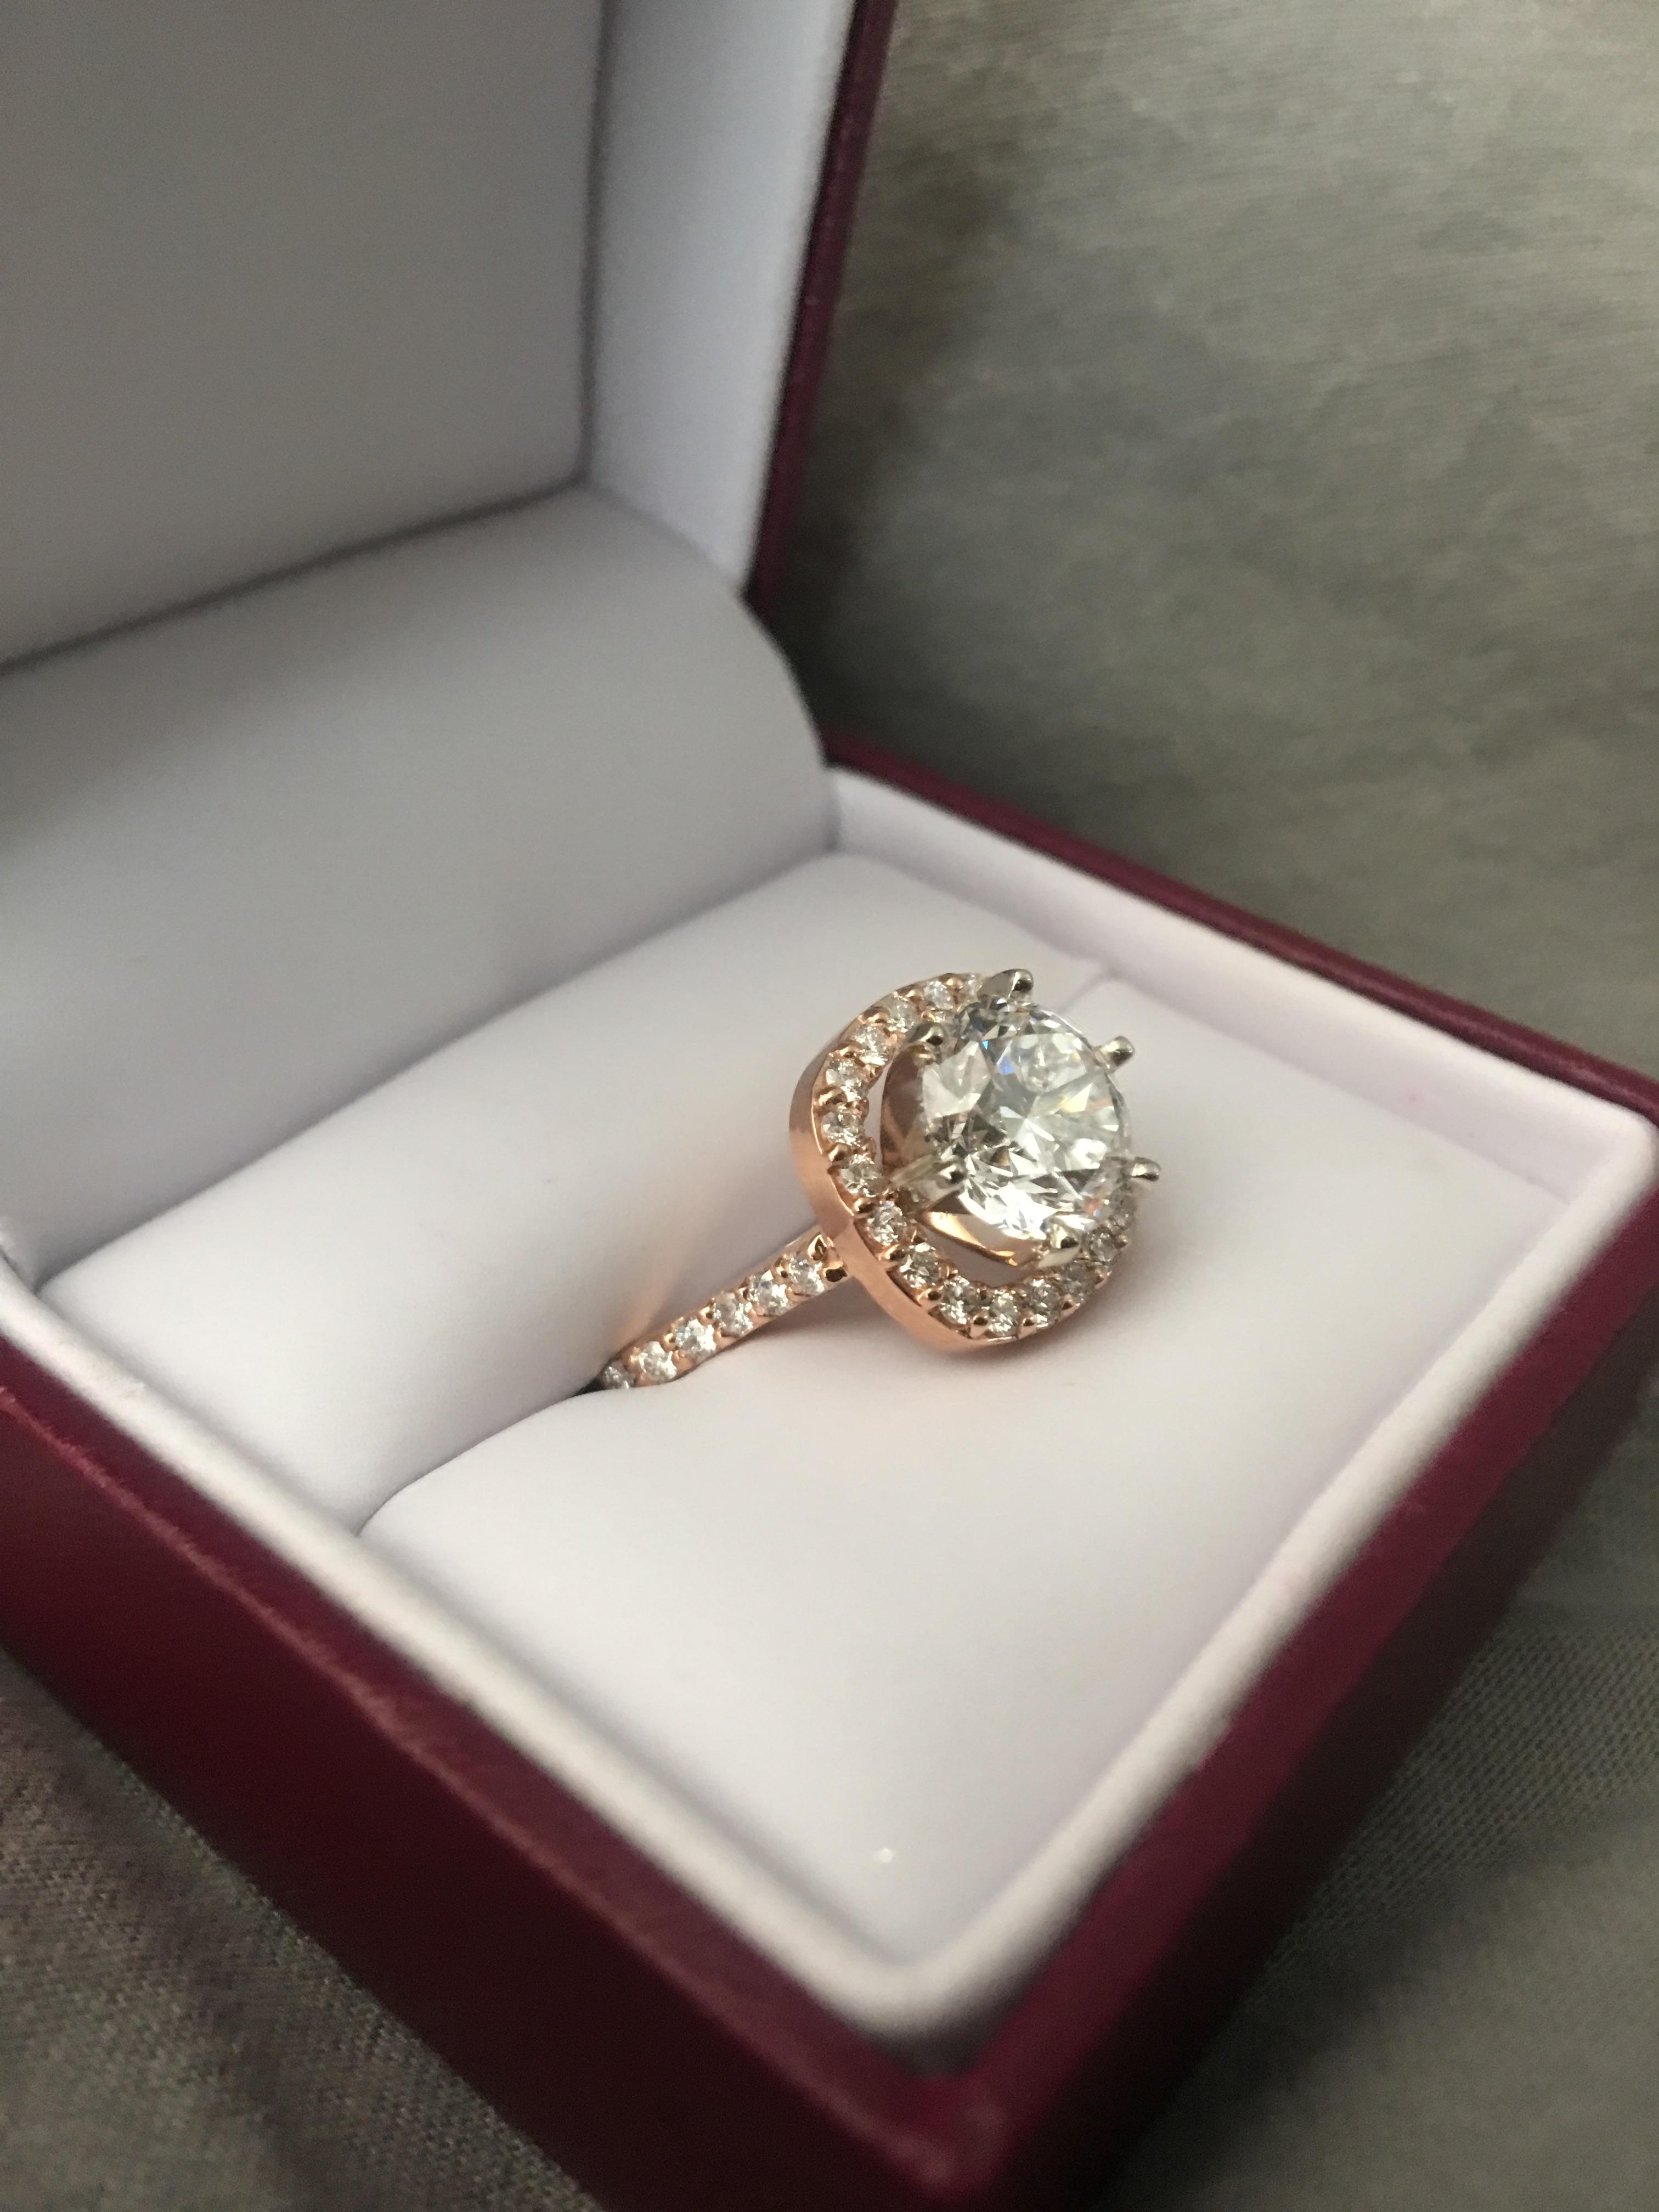 ***REDUCED PRICE***Helzberg New Engagement